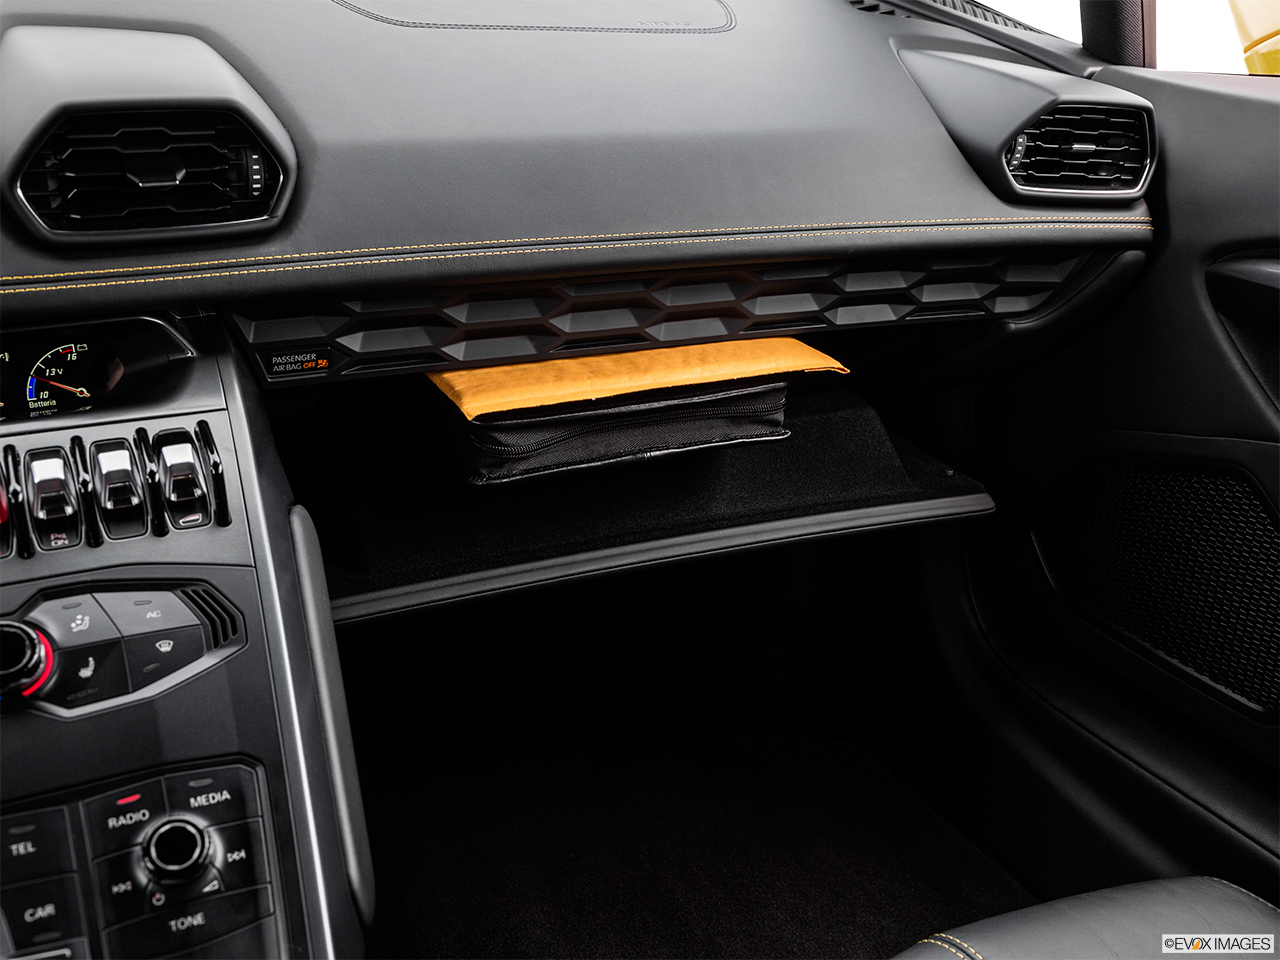 2015 Lamborghini Huracan LP 610-4 Glove box open.